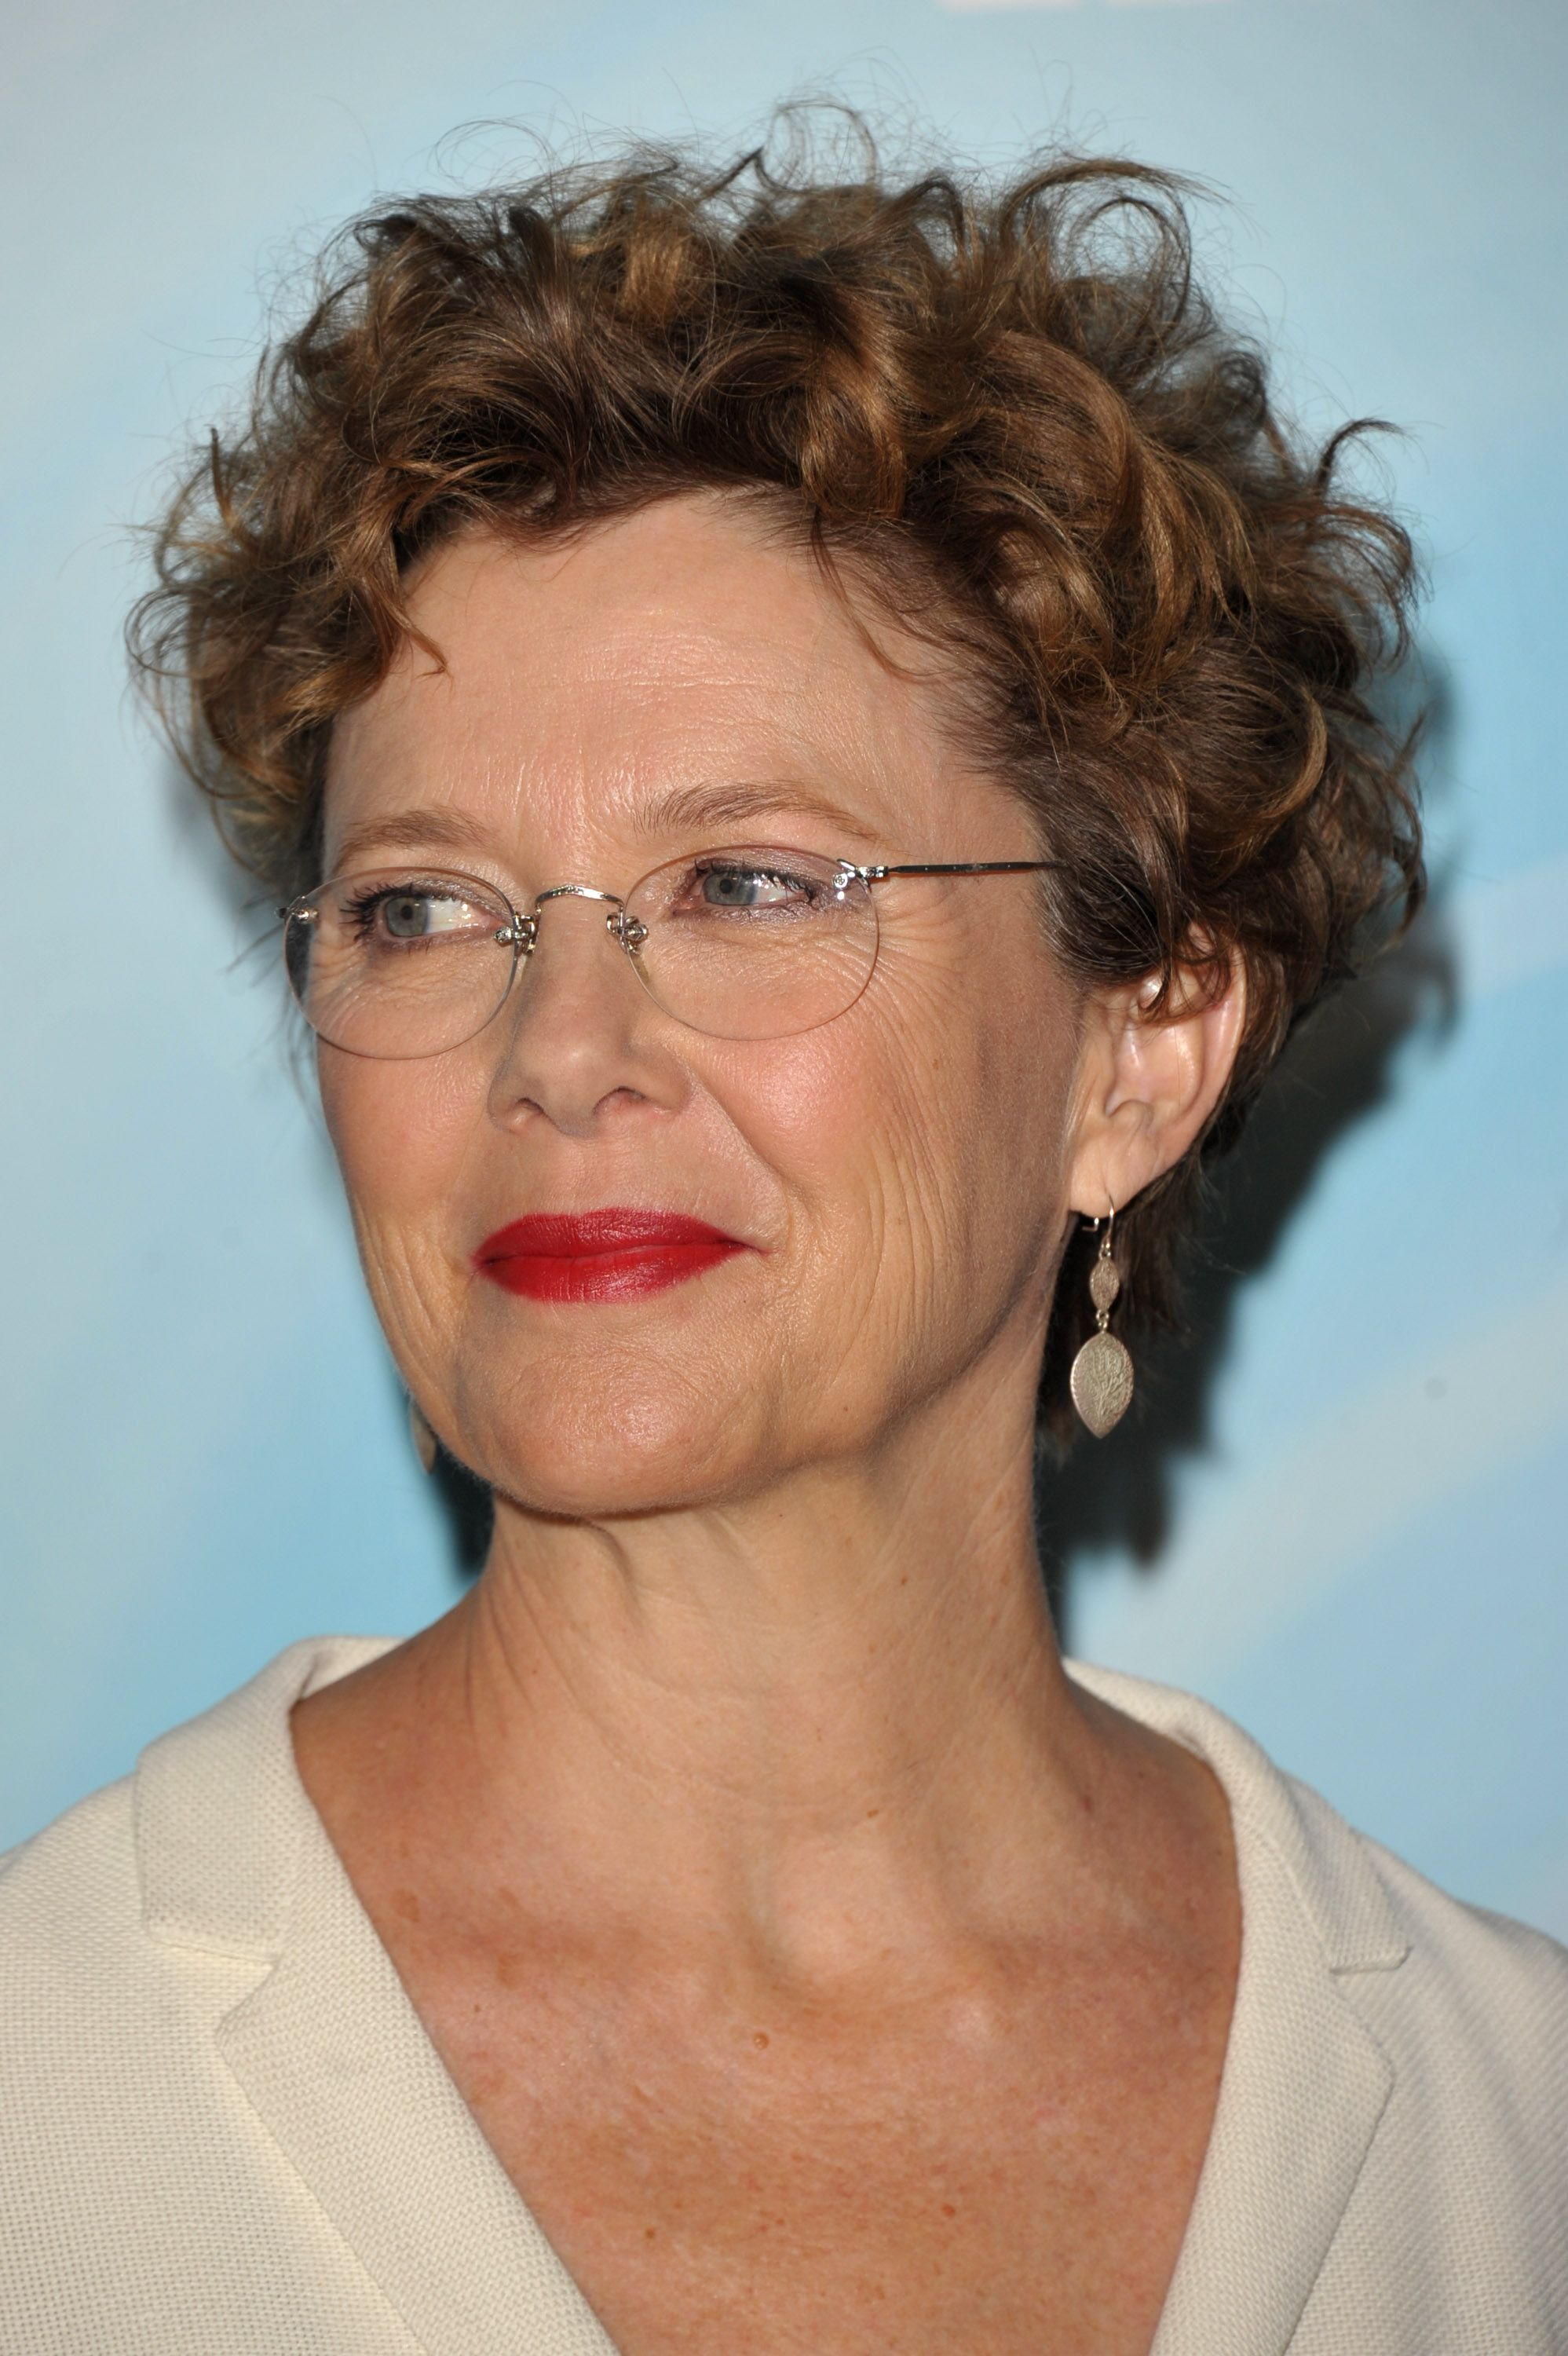 What Are Some Tips for Picking Eyeglass Frames for Women Over Age 50